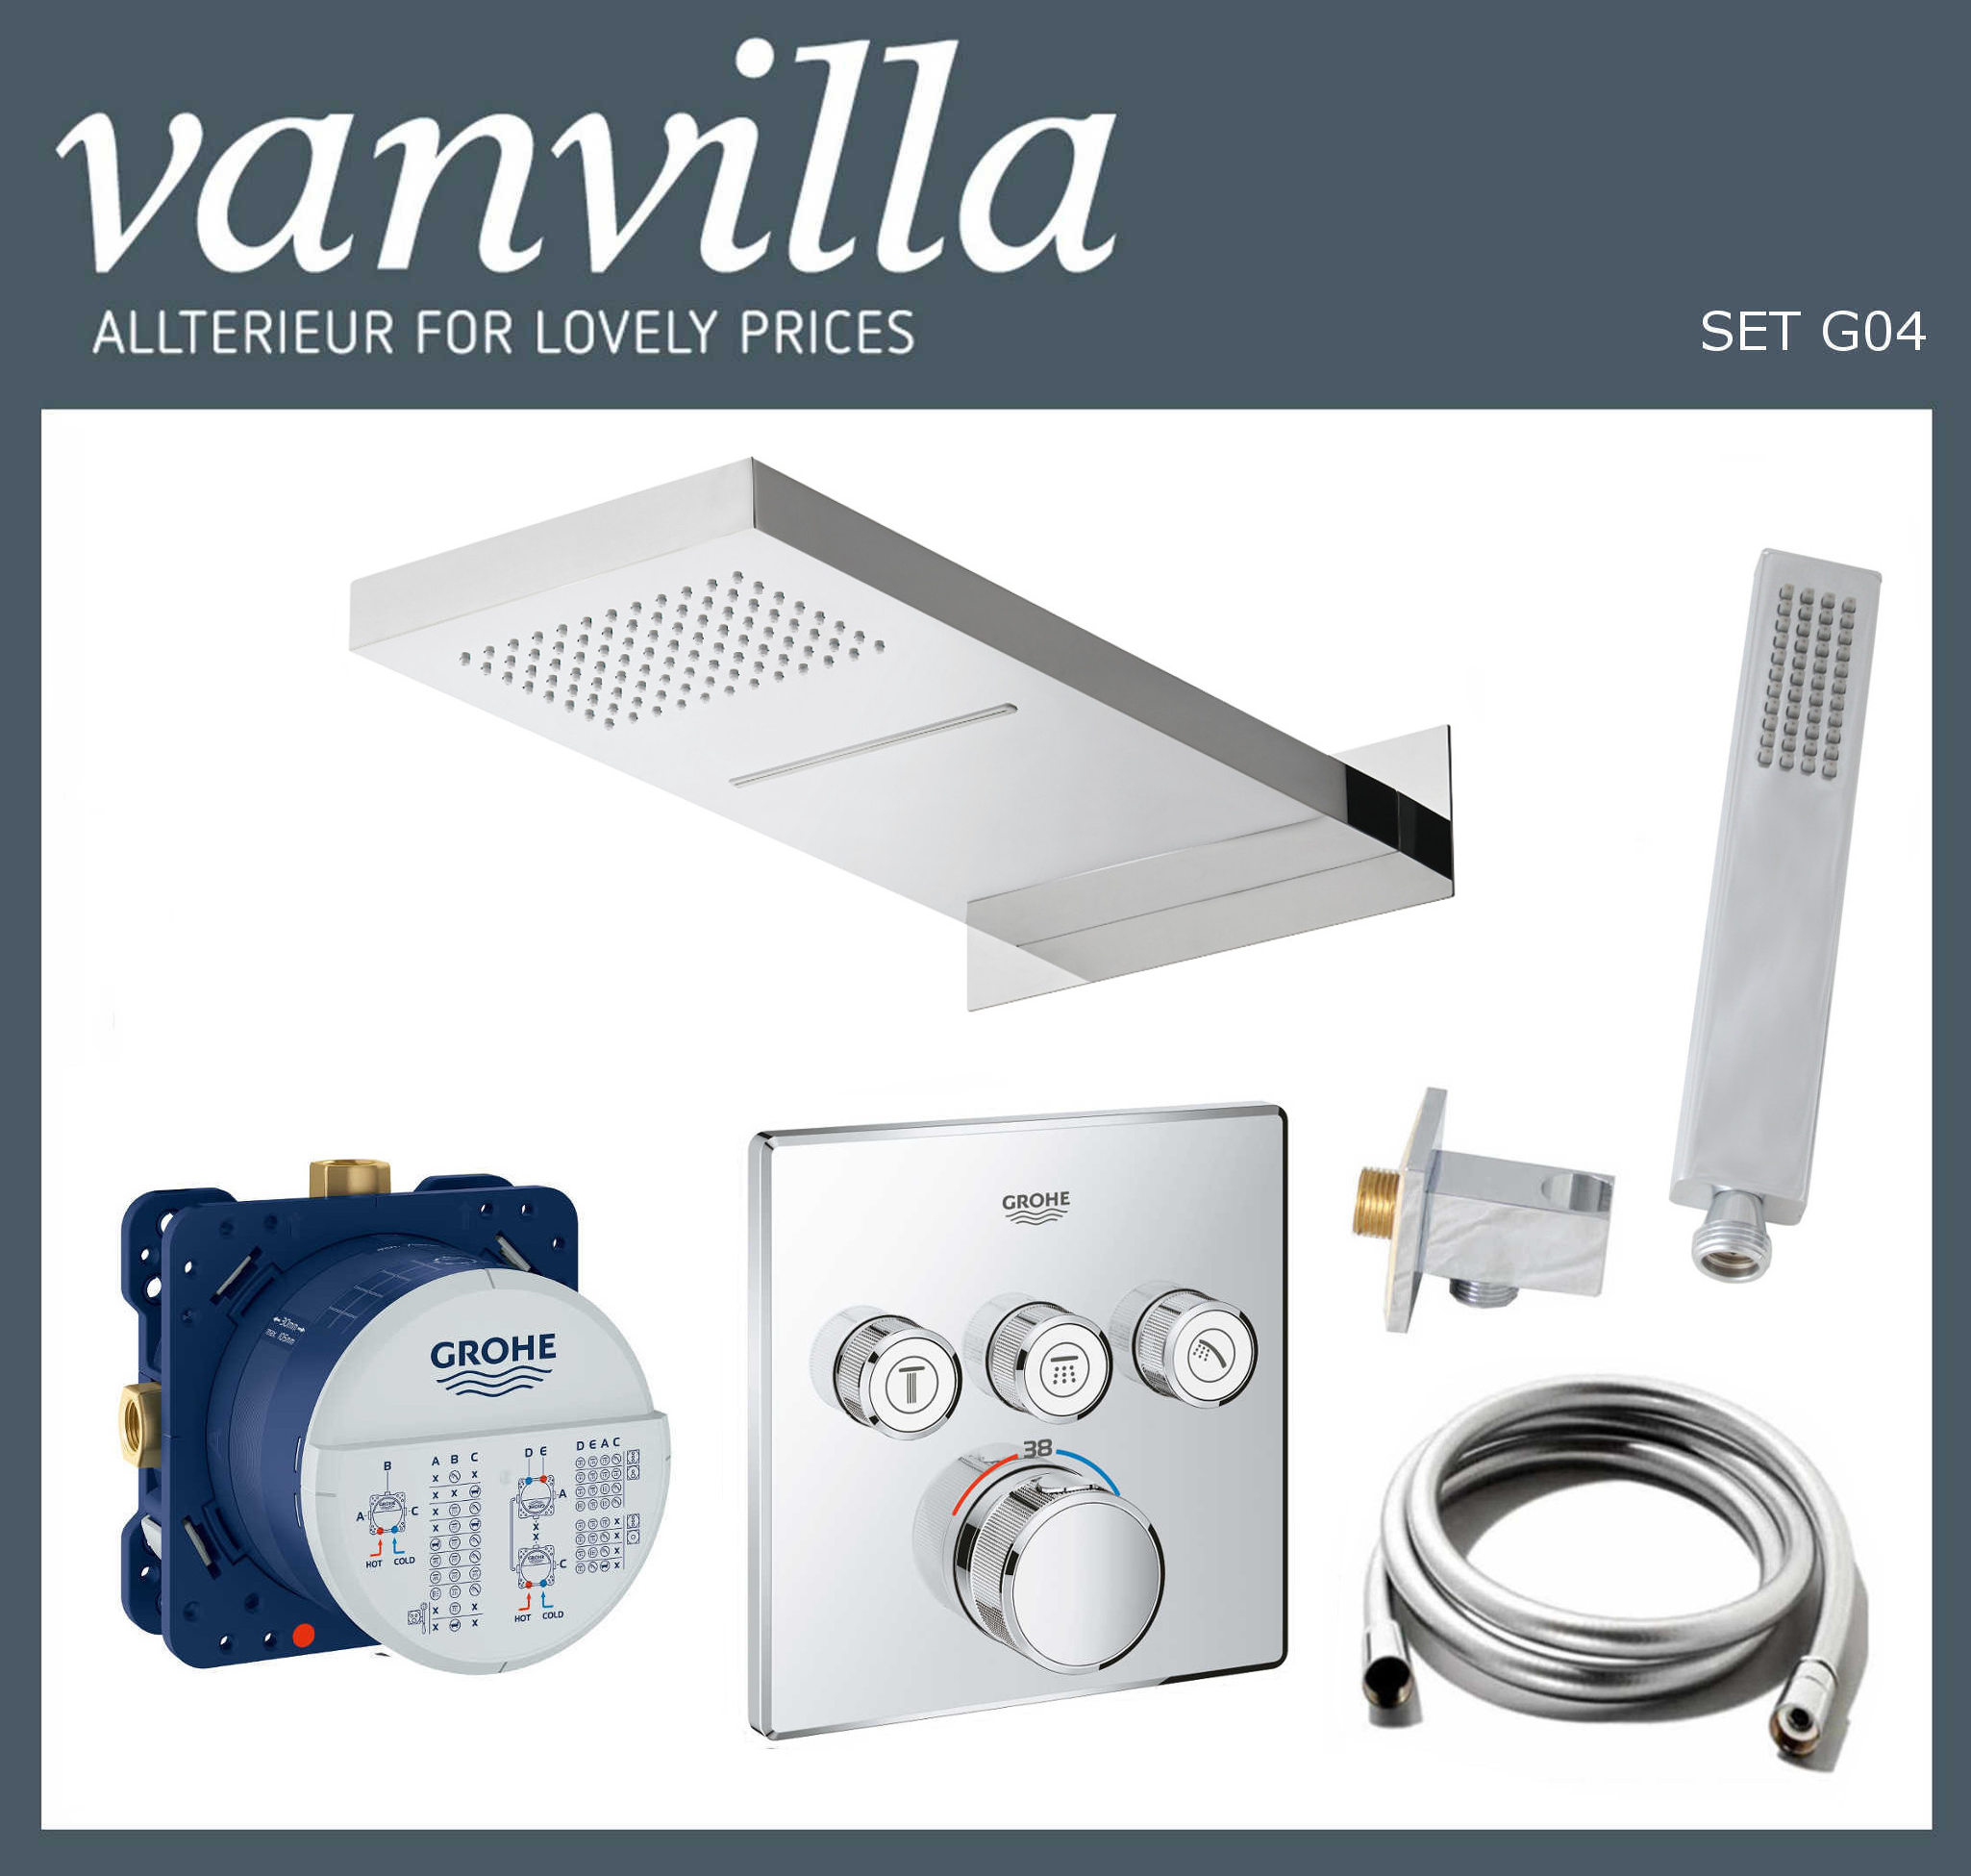 SET G04 UP vanvilla mit Duscharmatur Grohe SmartControl